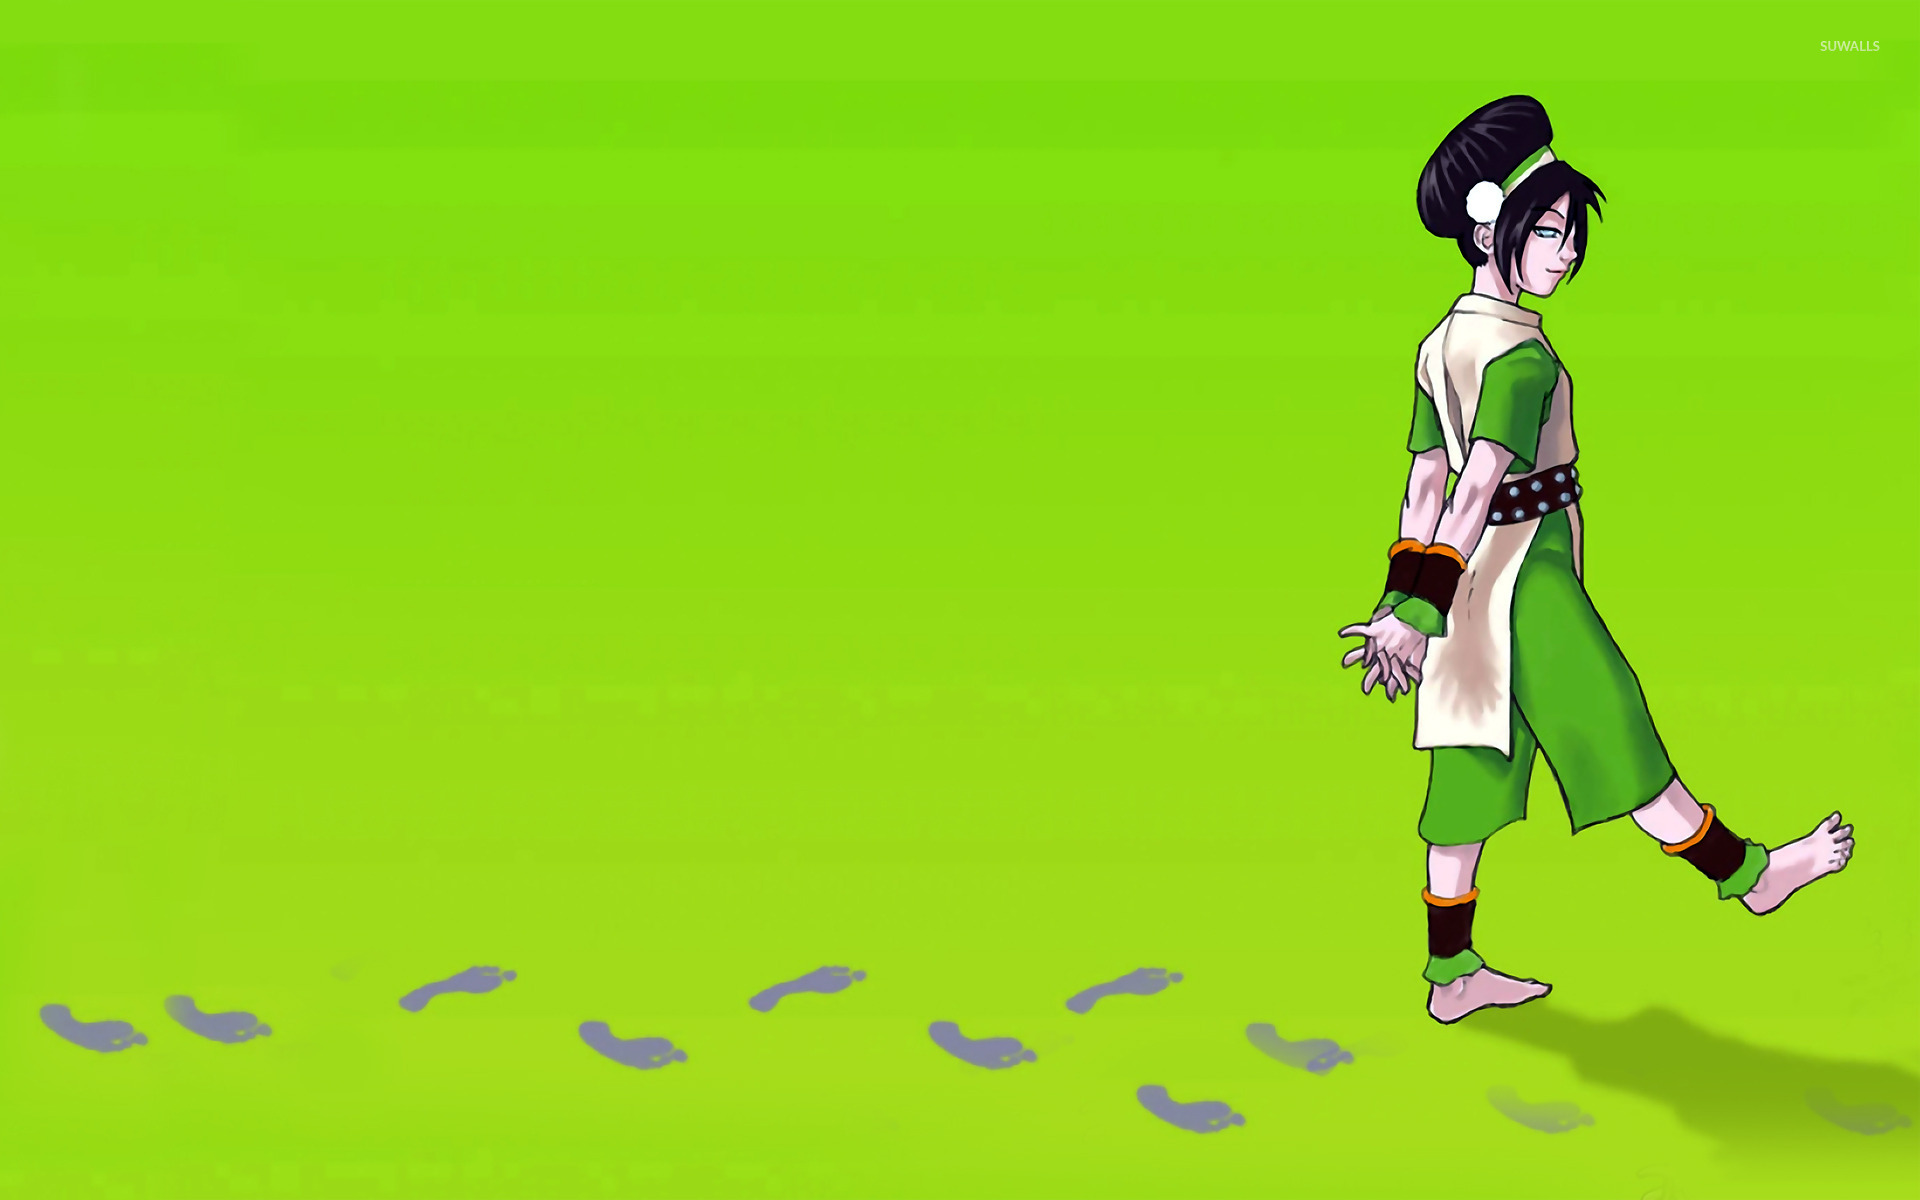 Toph Beifong Avatar The Last Airbender 2 Wallpaper Anime